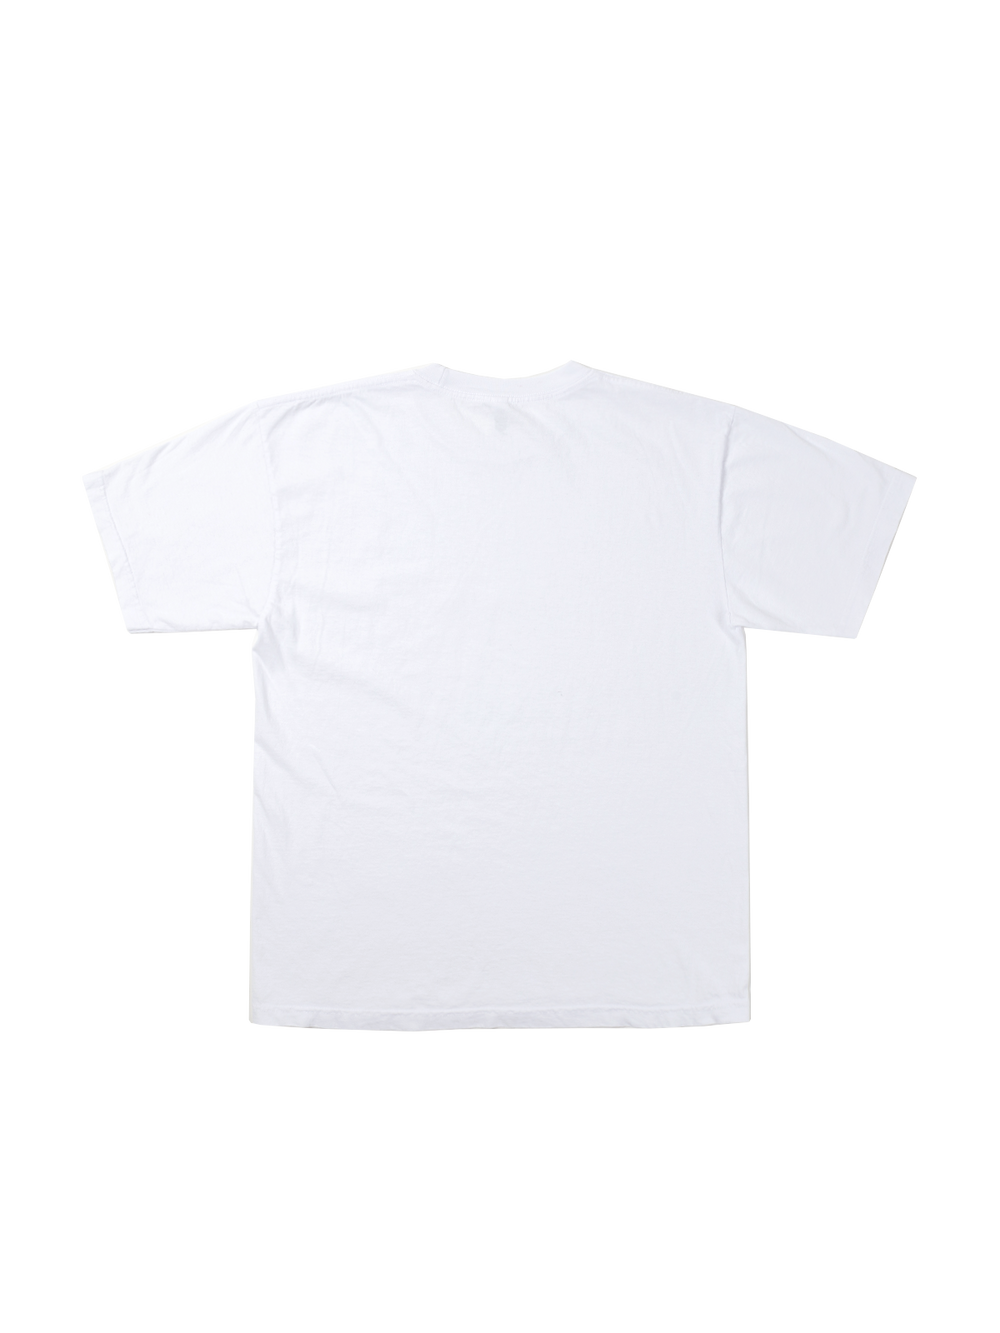 All-Seeing Eye Tee - White